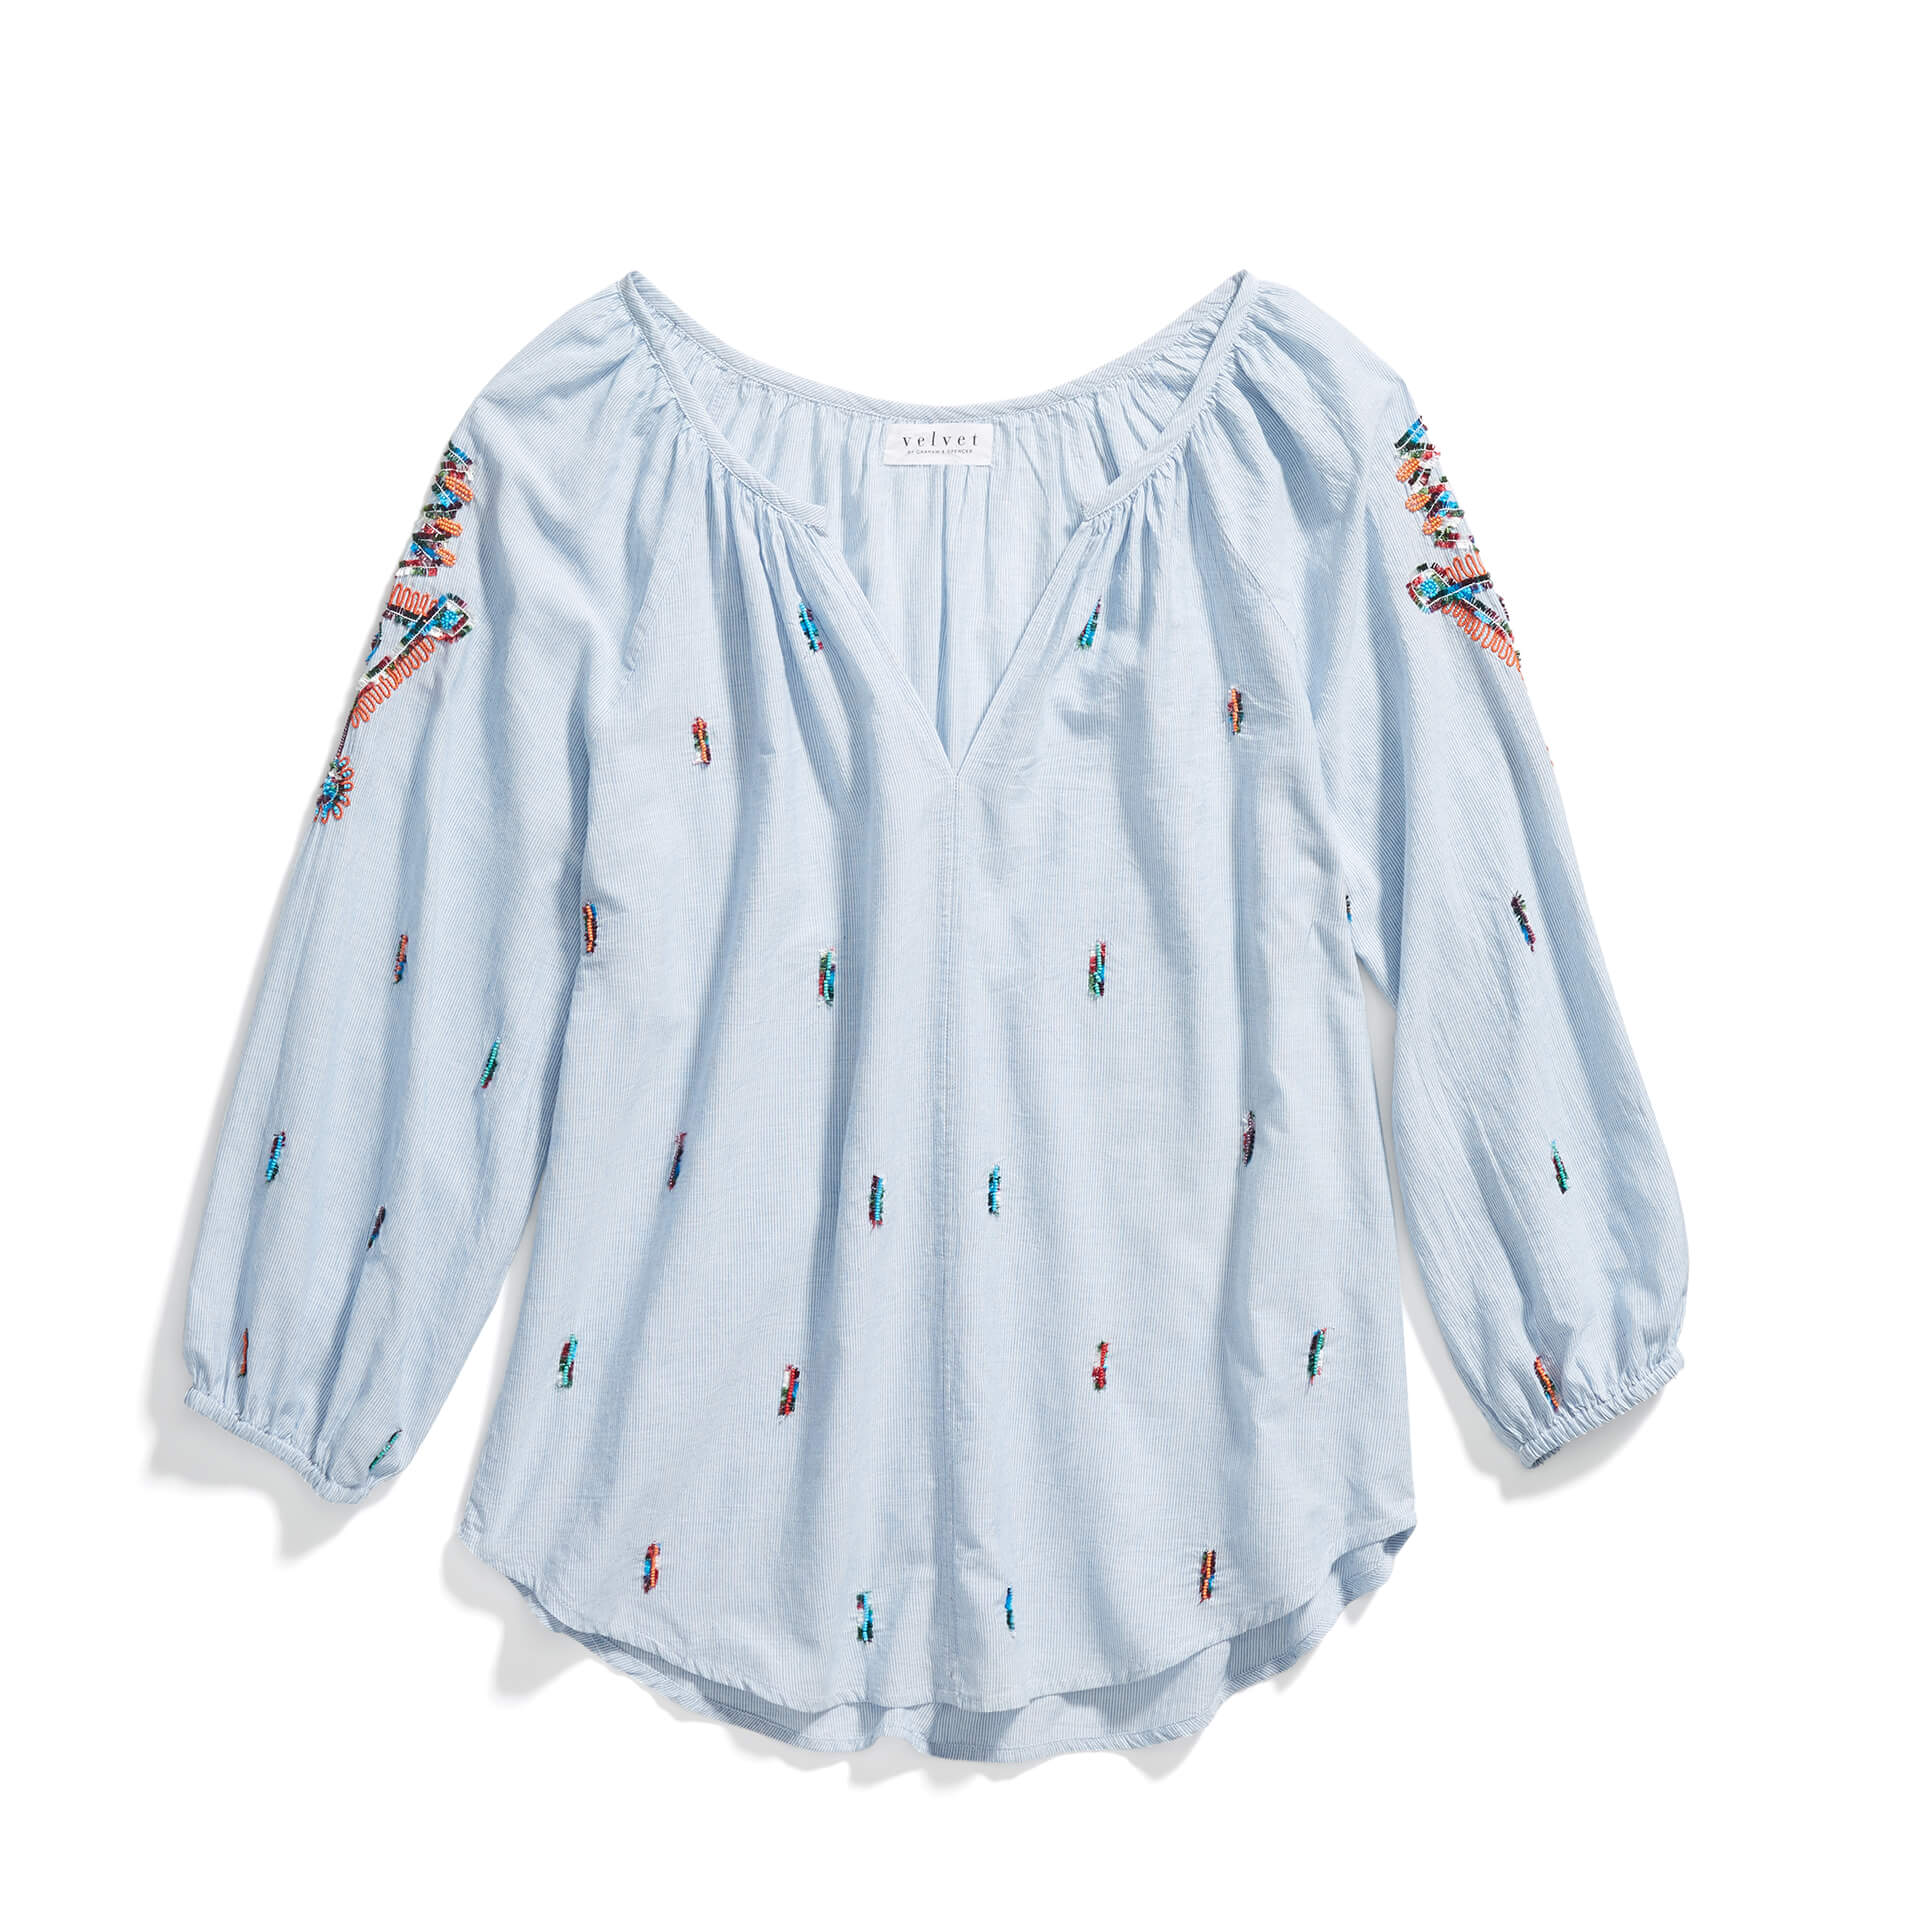 Stitch Fix New Spring Arrivals